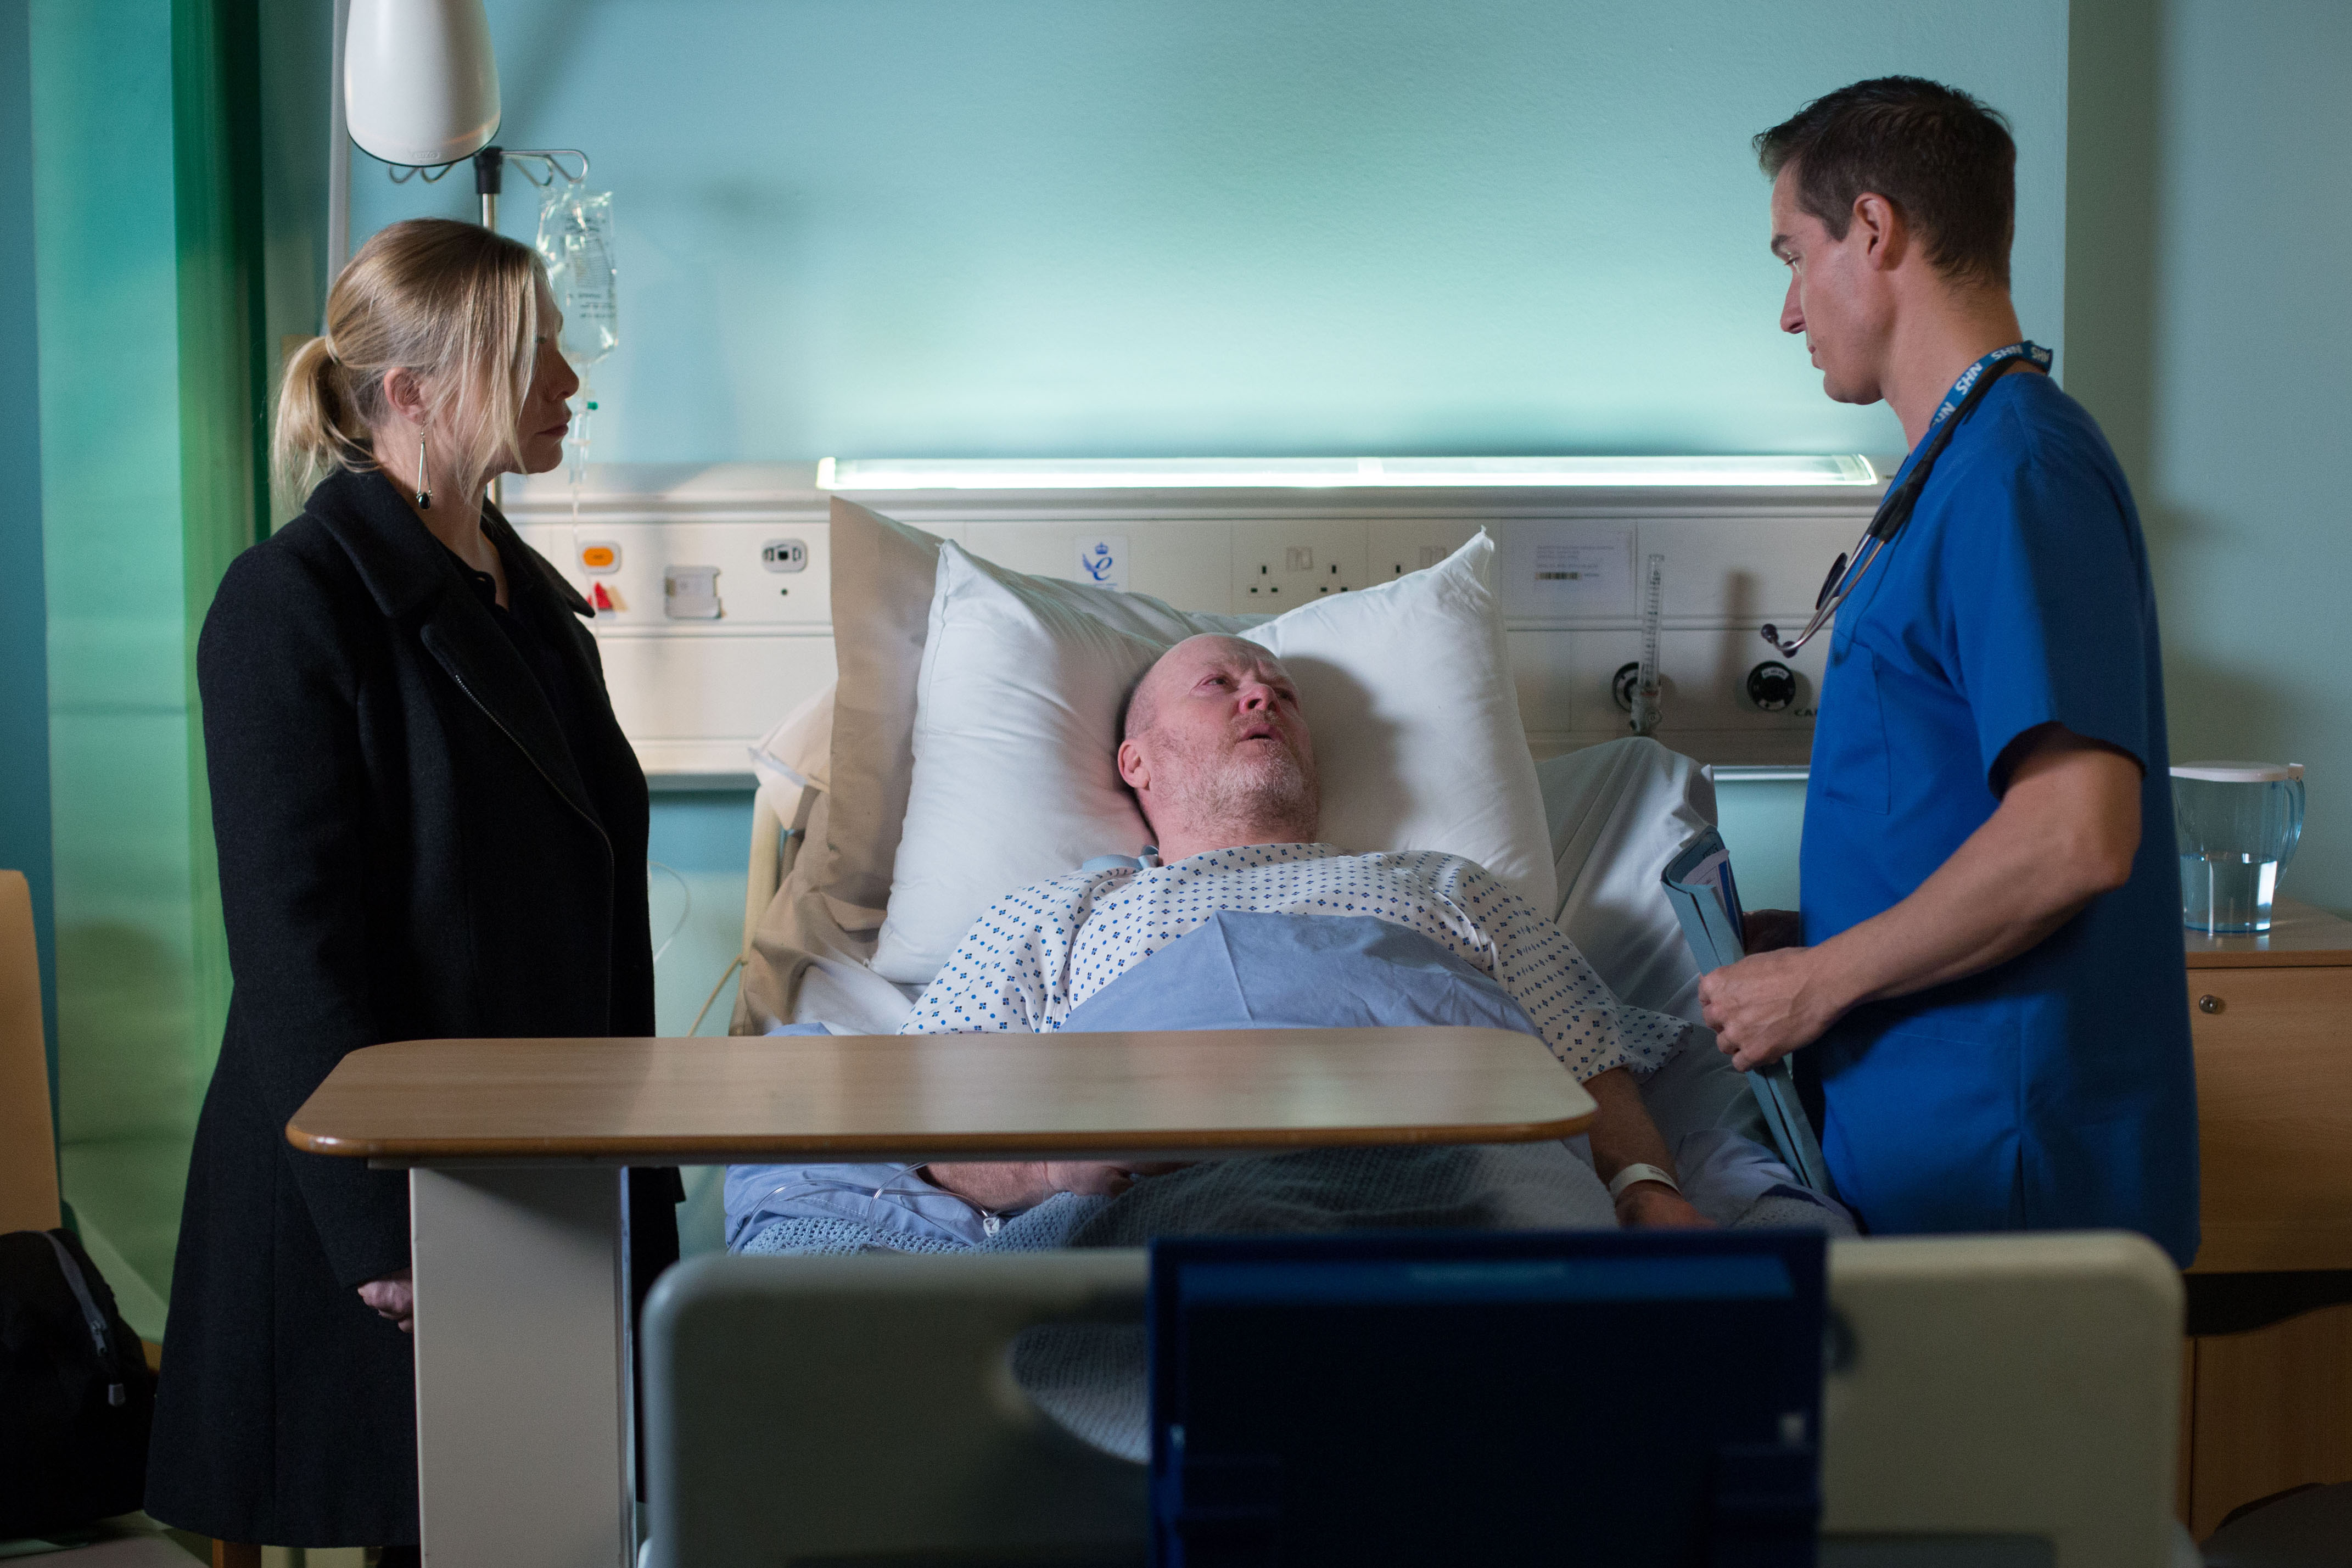 EastEnders spoilers: Is Phil set to finally overcome his demons thanks to Ronnie and Honey?